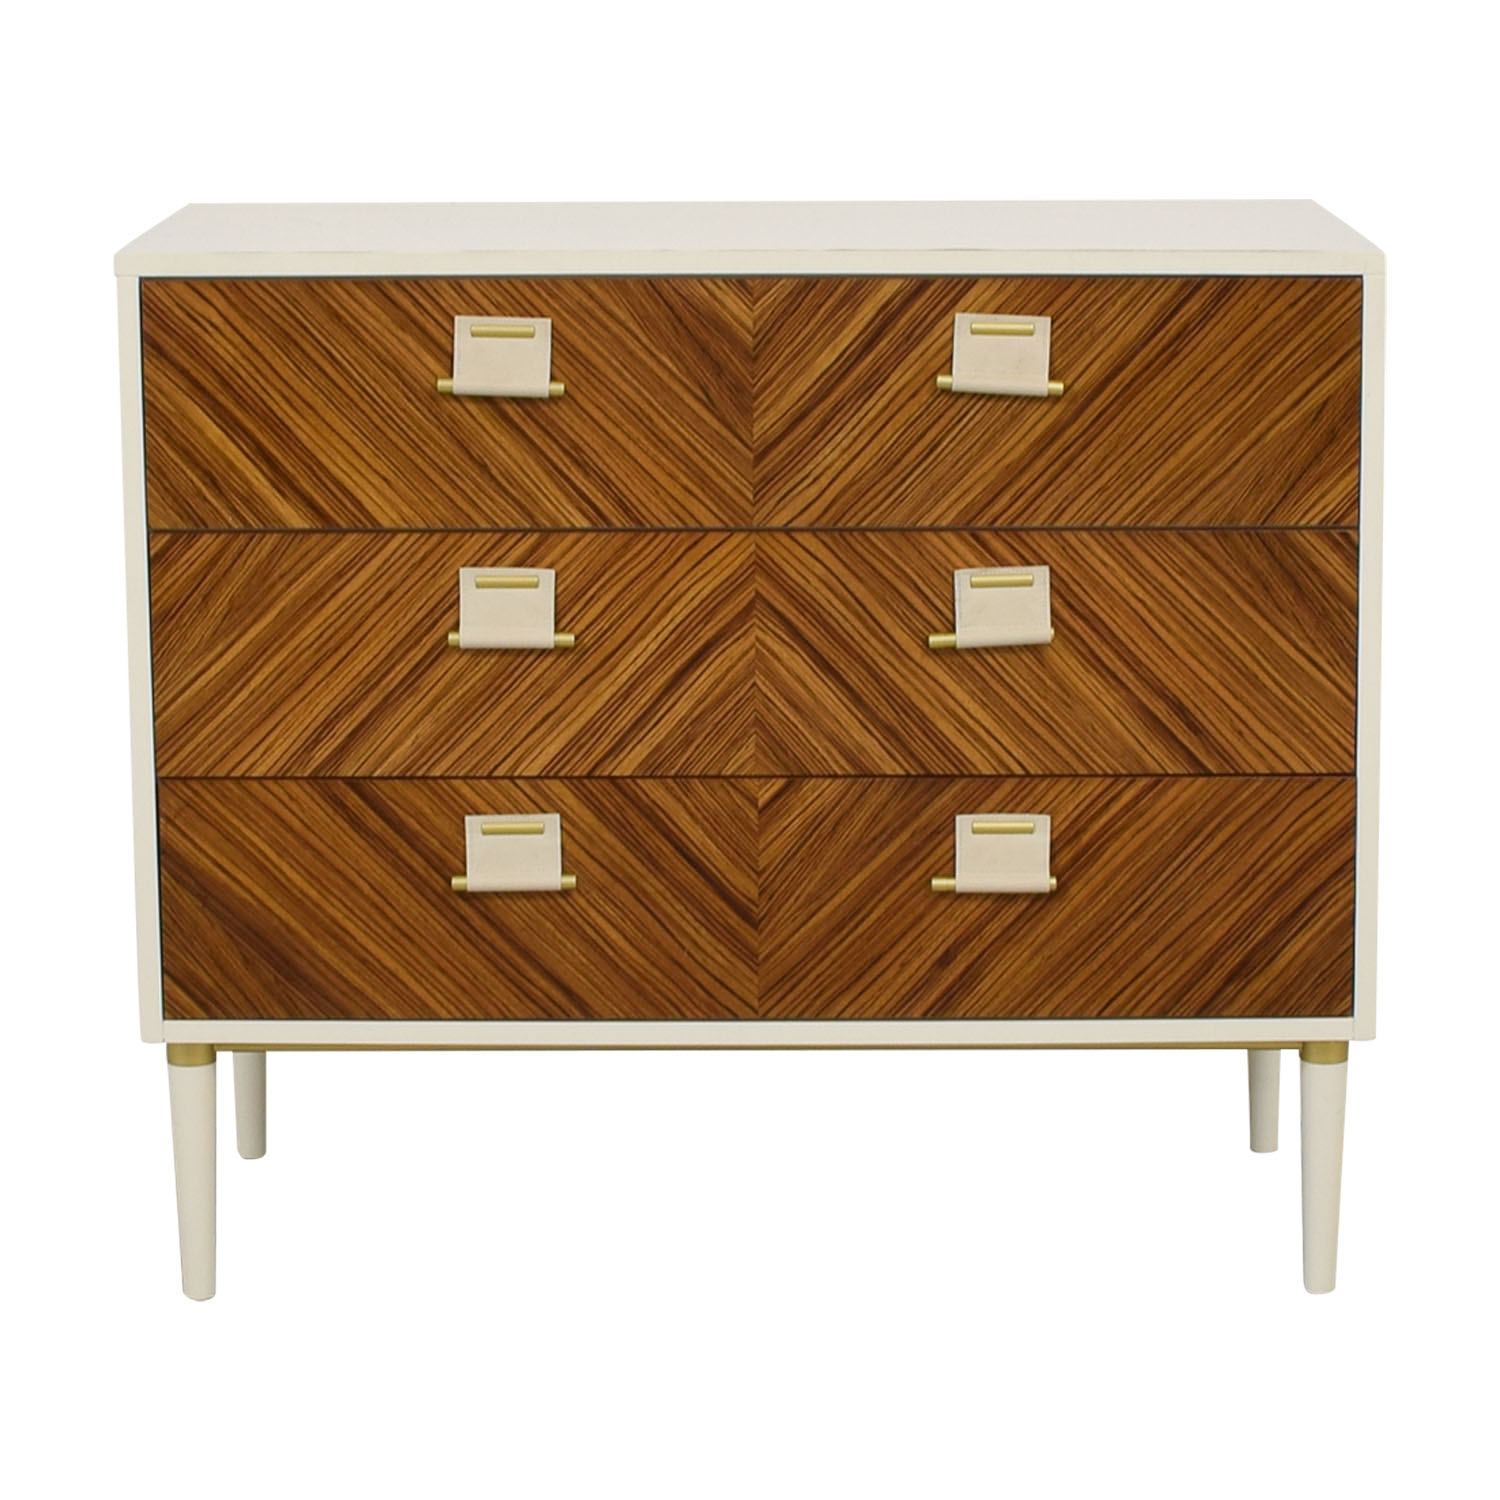 Anthropologie Anthropologie Geo-Marquetry White and Wood Three-Drawer Dresser Storage